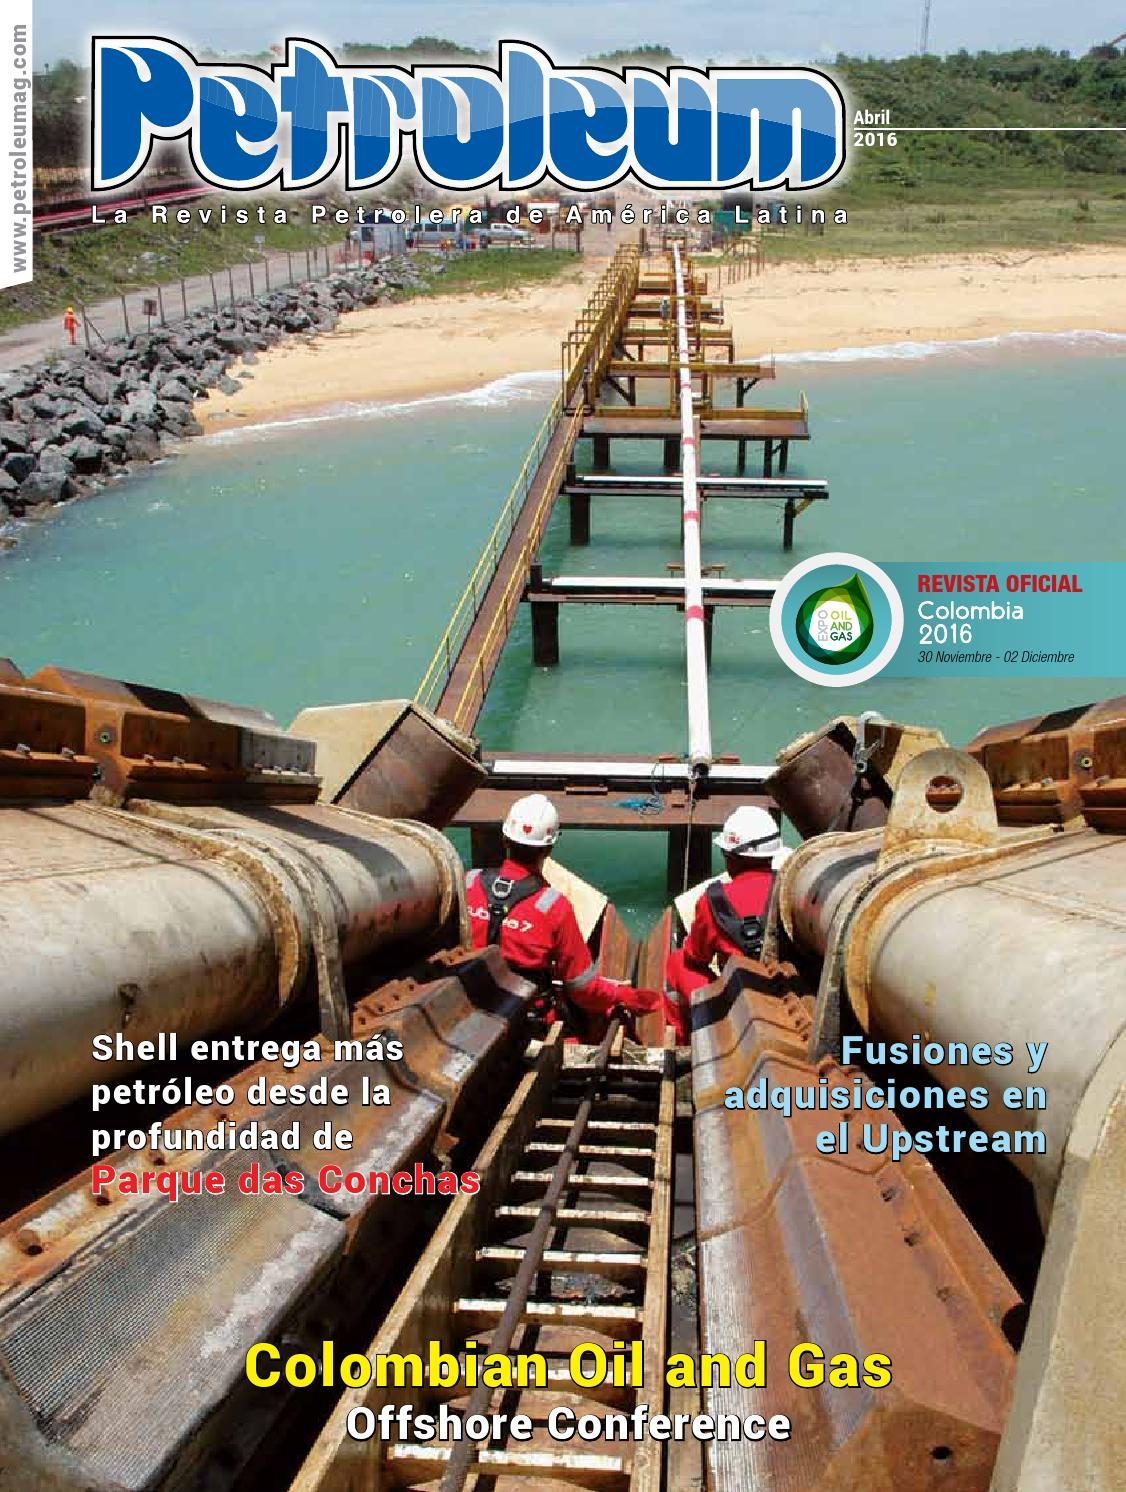 Abril 2016 - Petroleum 315 by Revista Petroleum - issuu